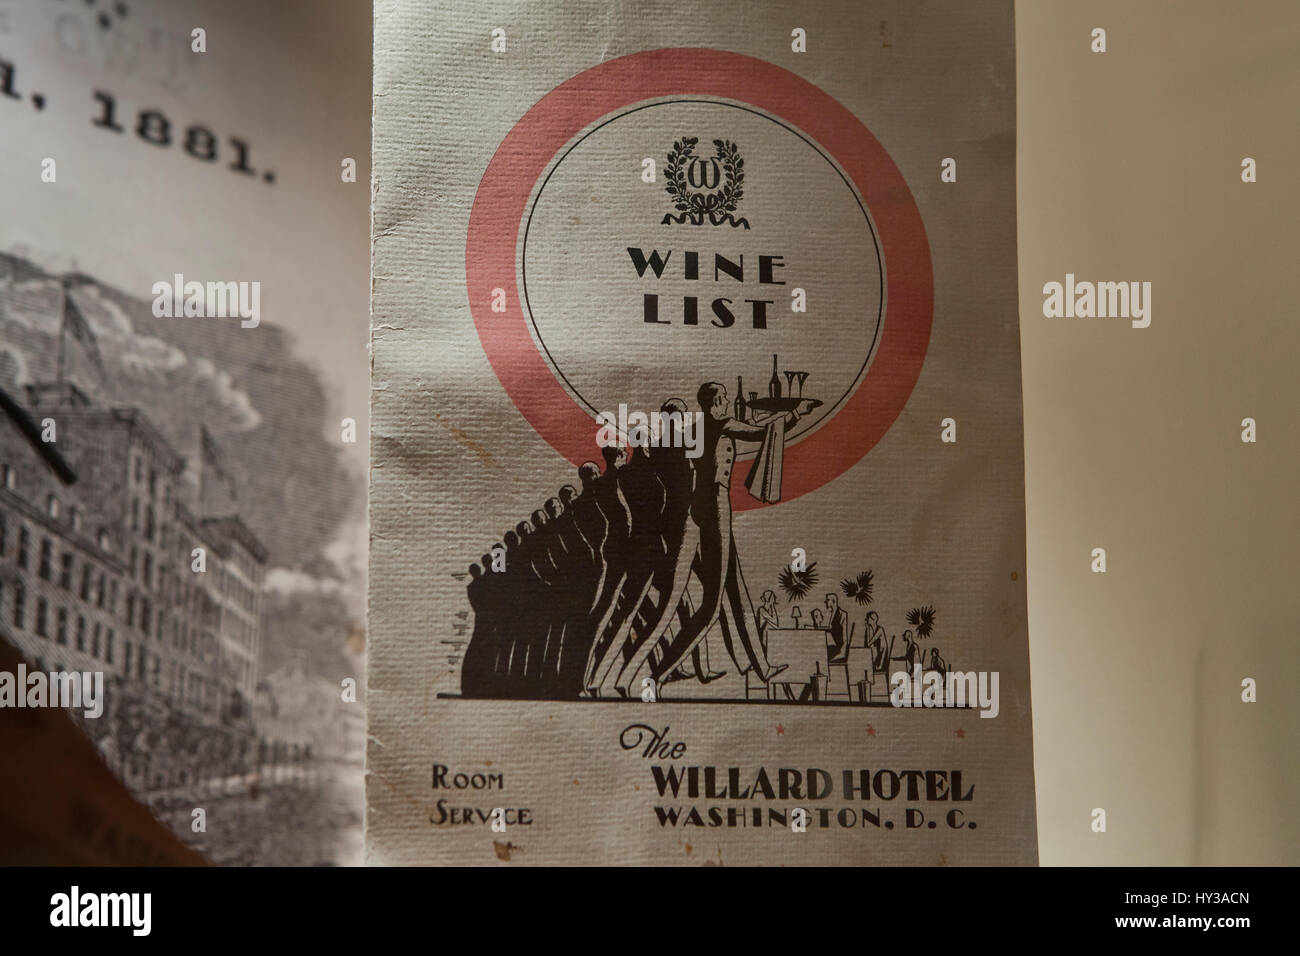 Vintage wine list of the Willard Hotel, Washington, DC USA - Stock Image